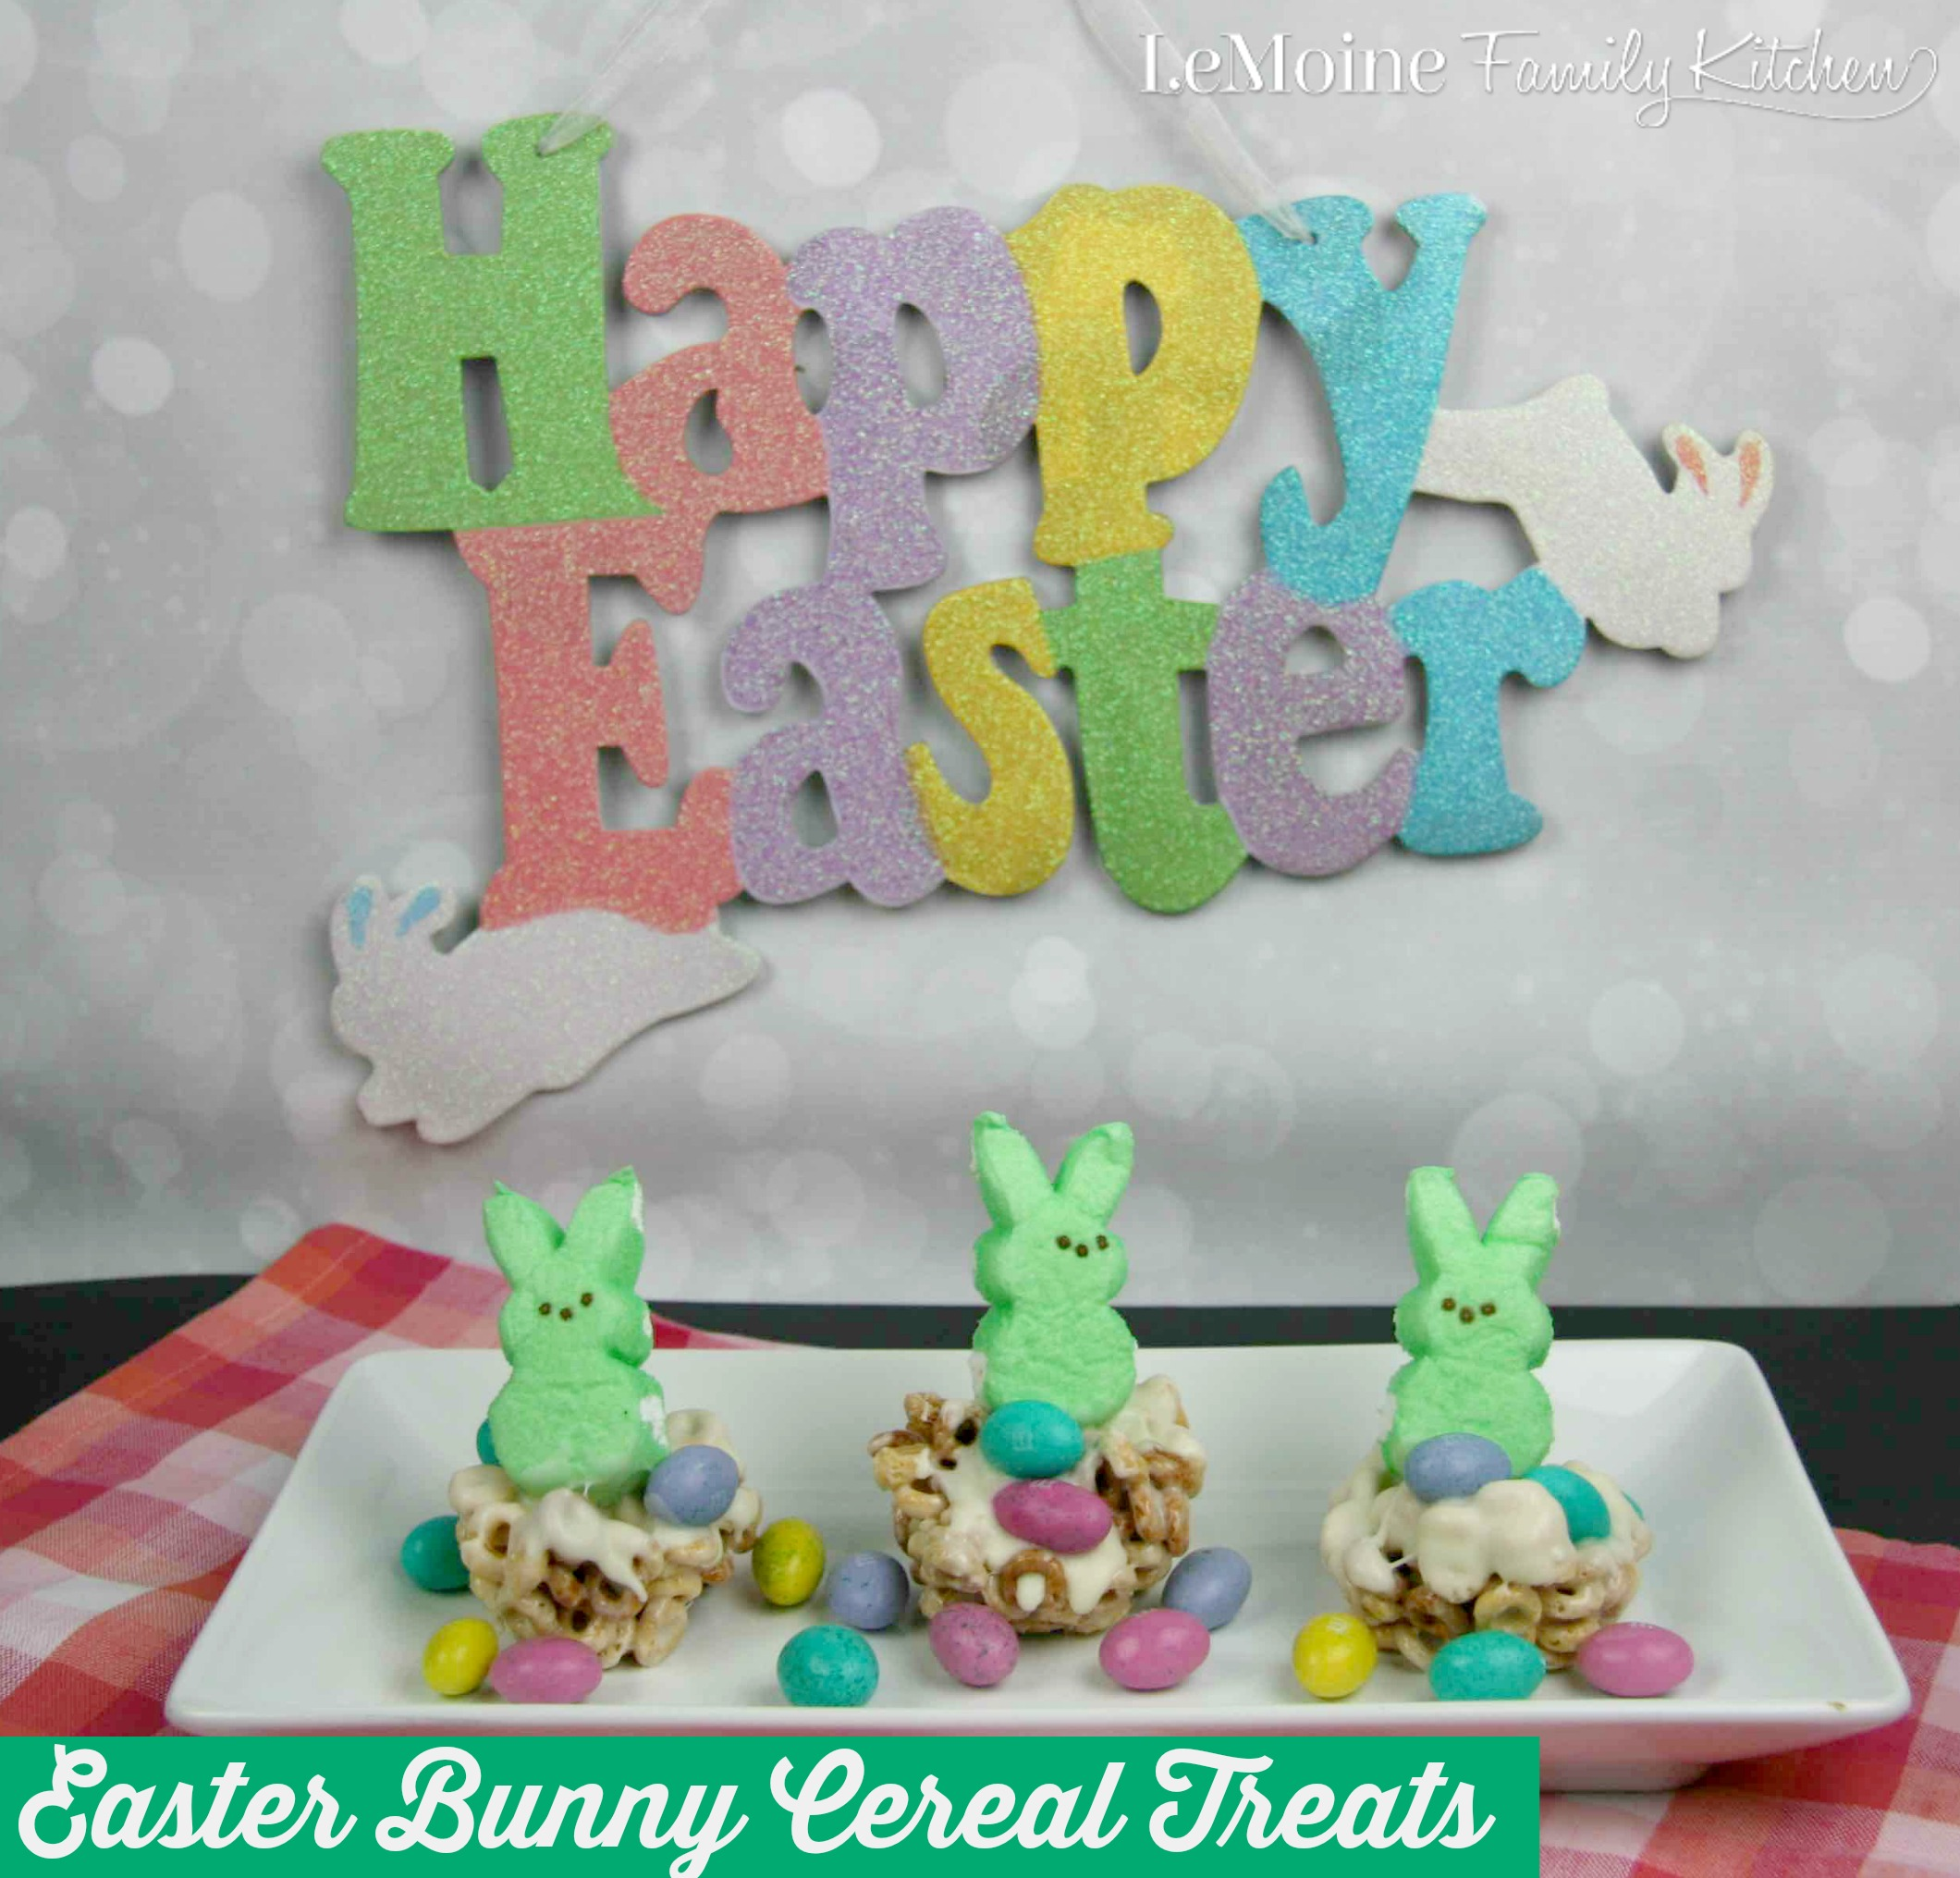 Easter Bunny Cereal Treats